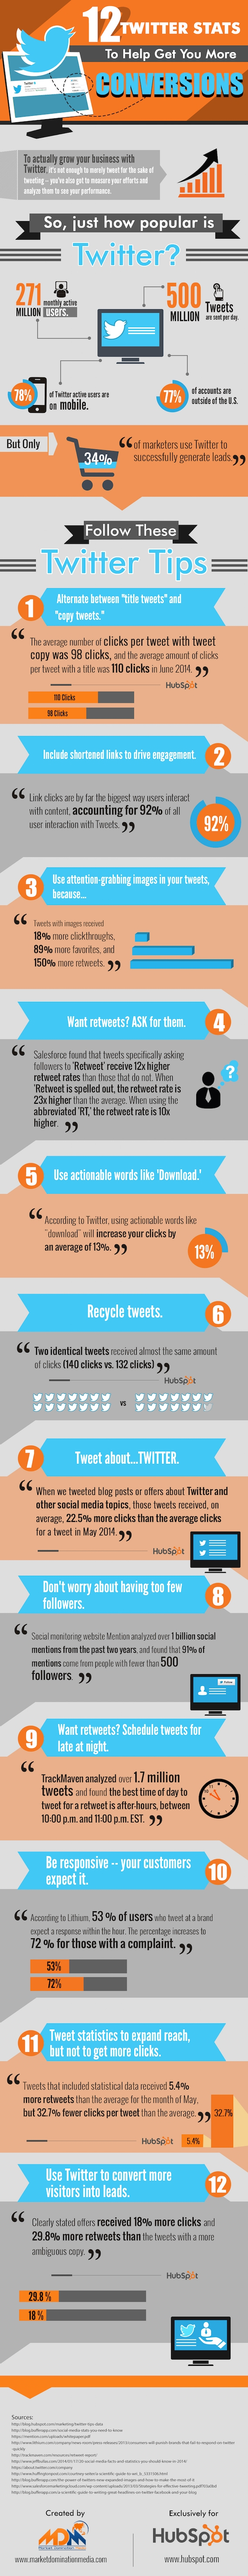 12-Twitter-Tips-to-Help-Increase-Your-Conversions-Infographic